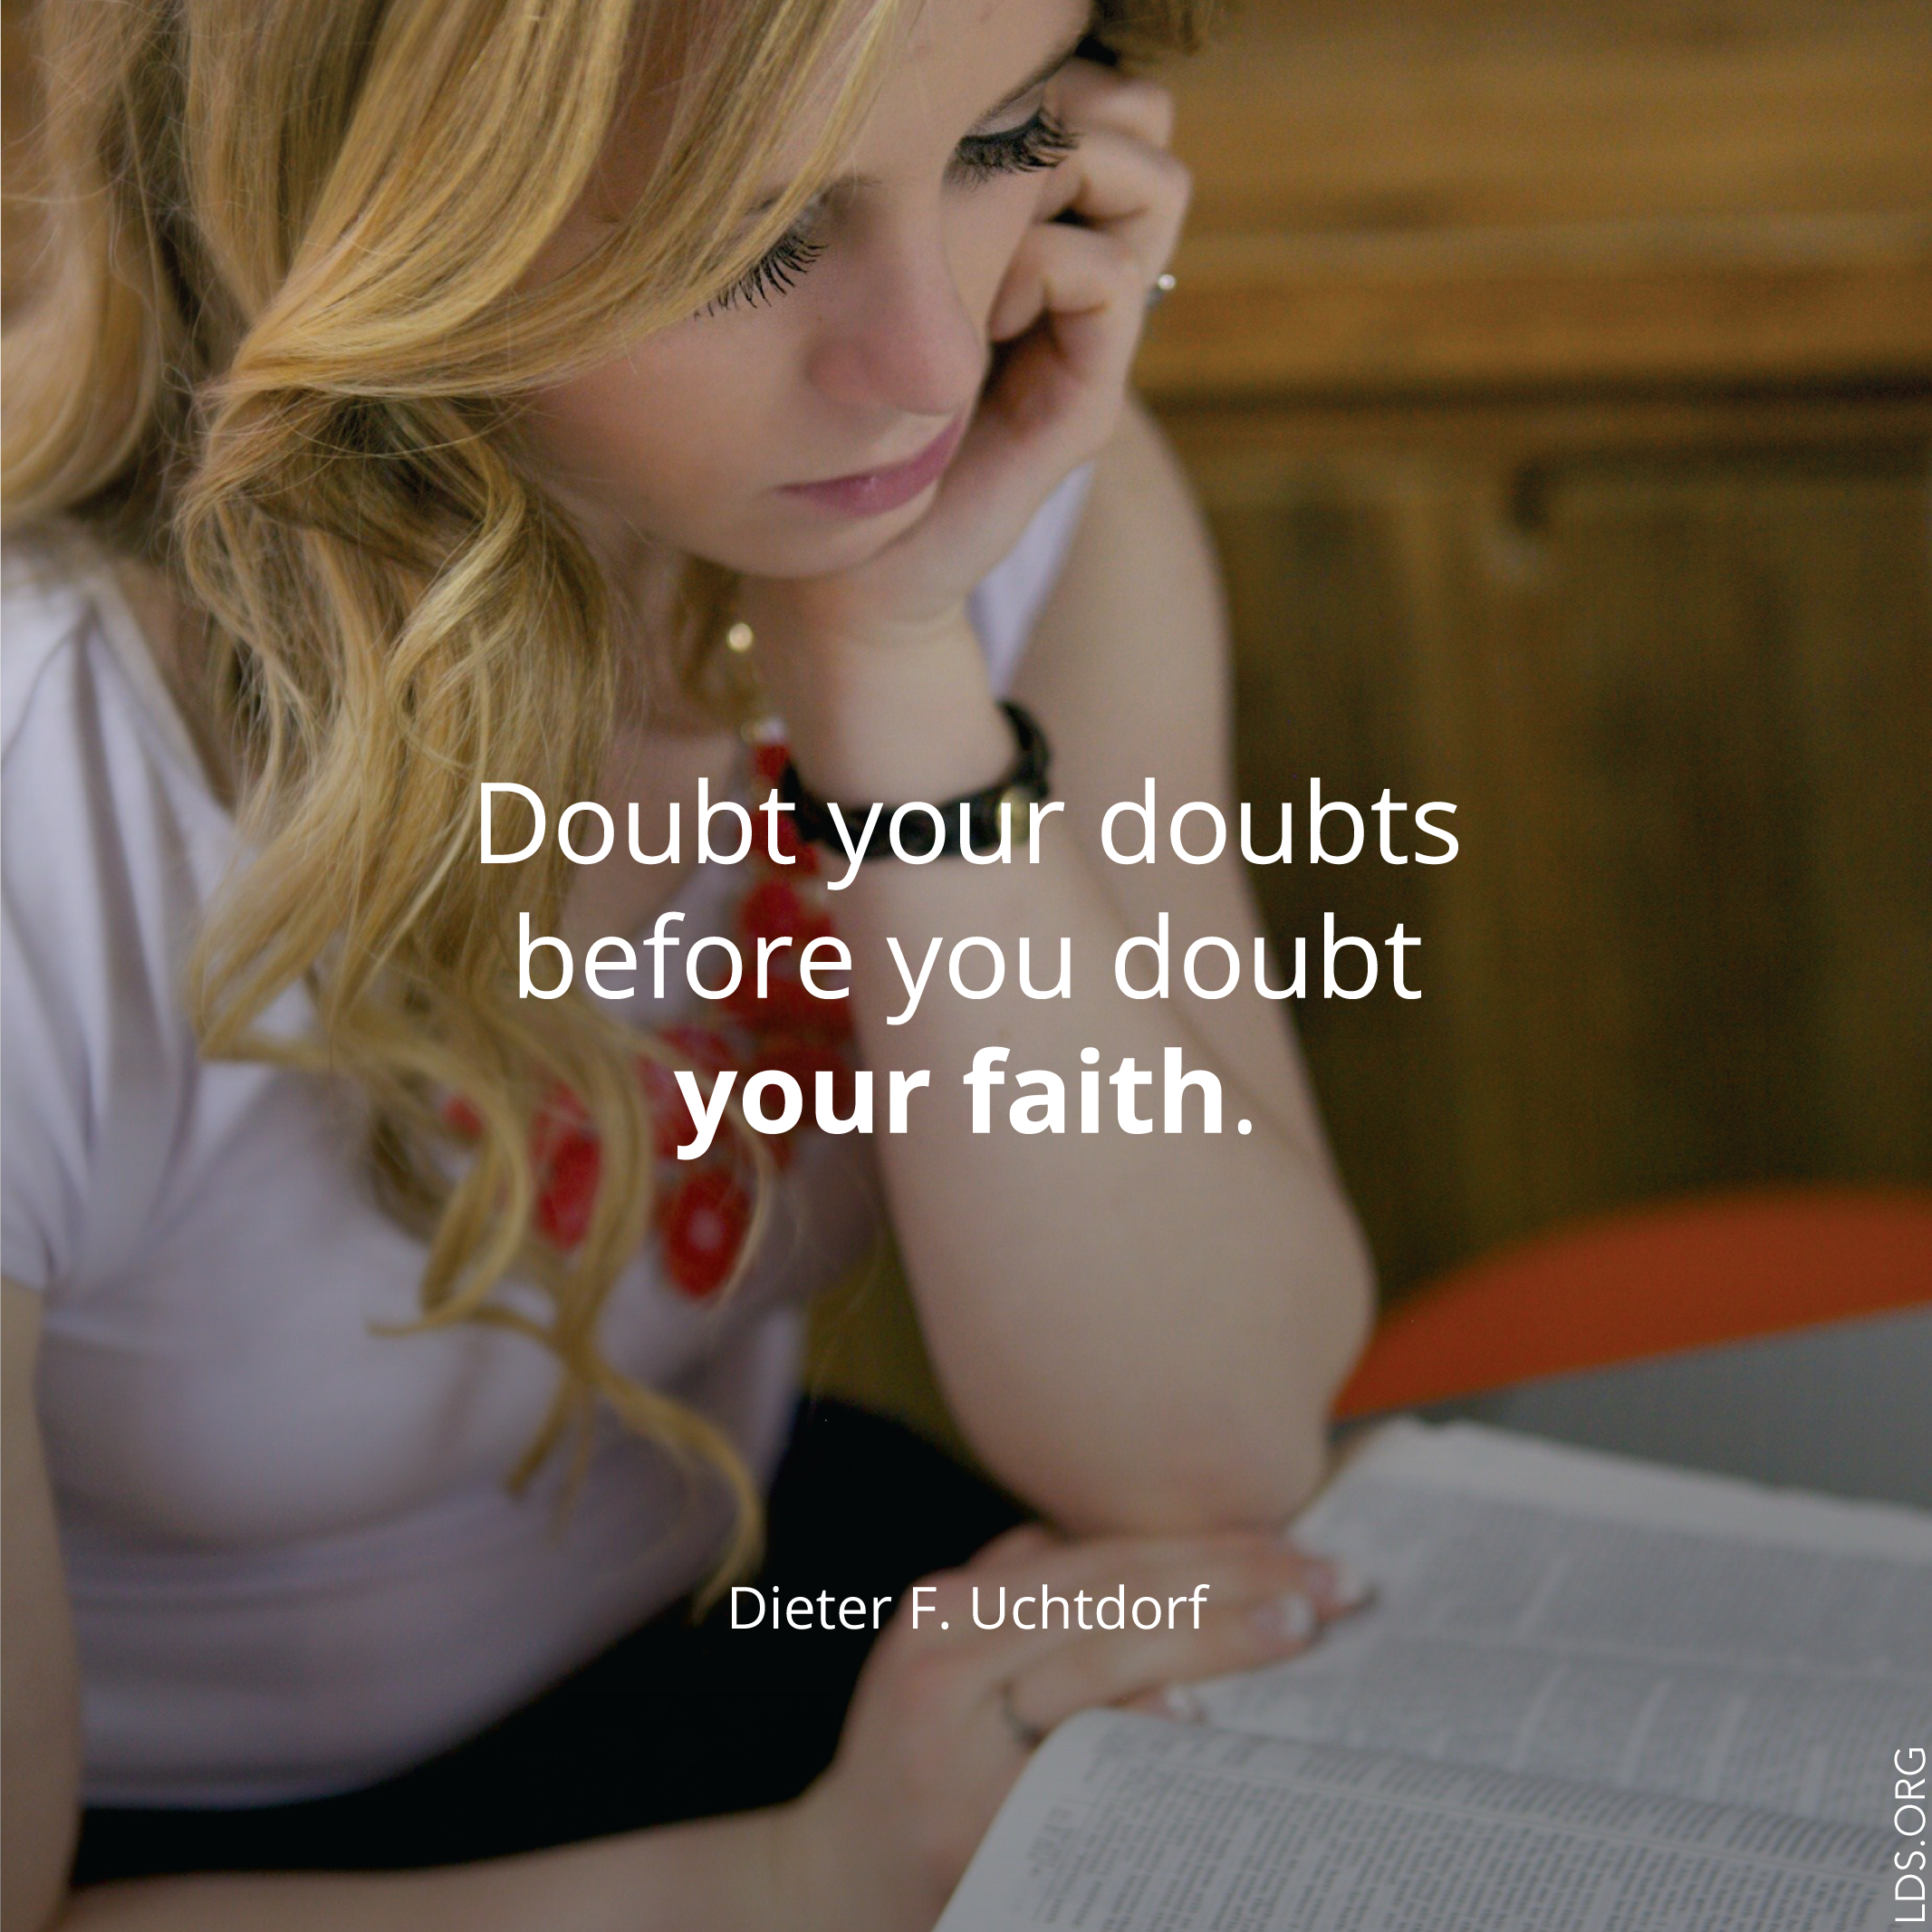 """Meme with a quote by Dieter F. Uchtdorf reading """"Doubt your doubts before you doubt your faith.""""  English language. © See Individual Images ipCode 1."""